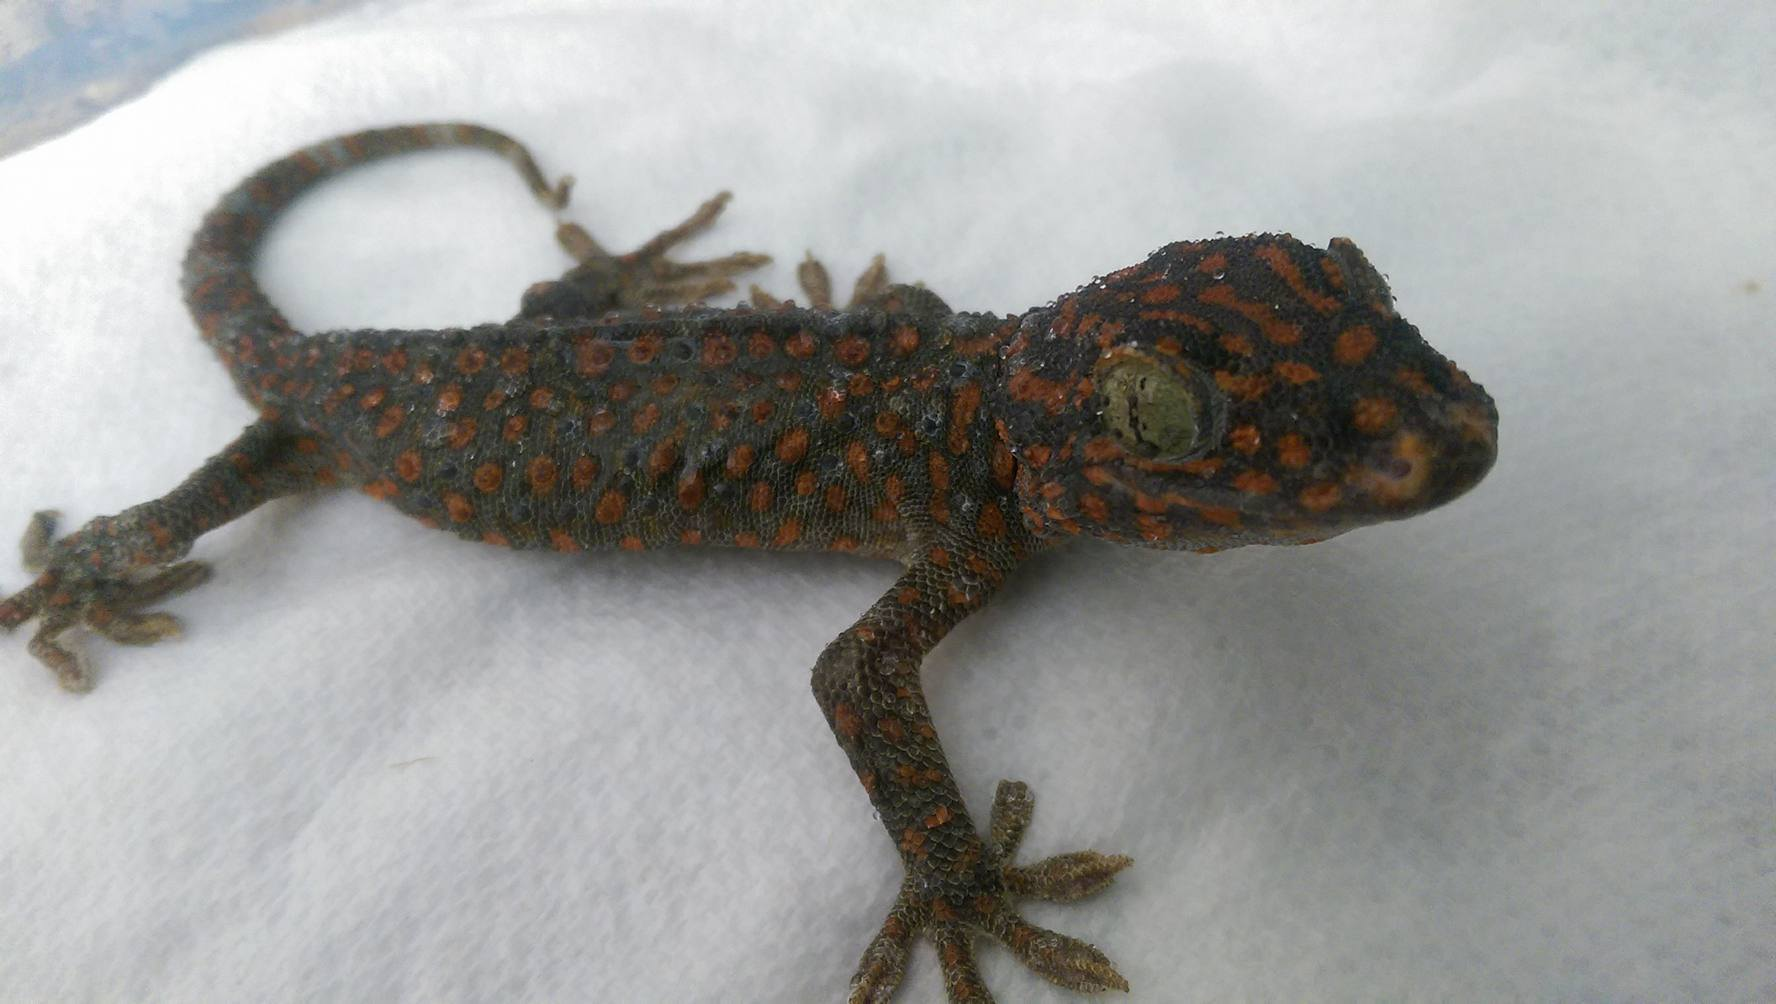 Powder Blue Tokay Gecko 13256 | BAIDATA